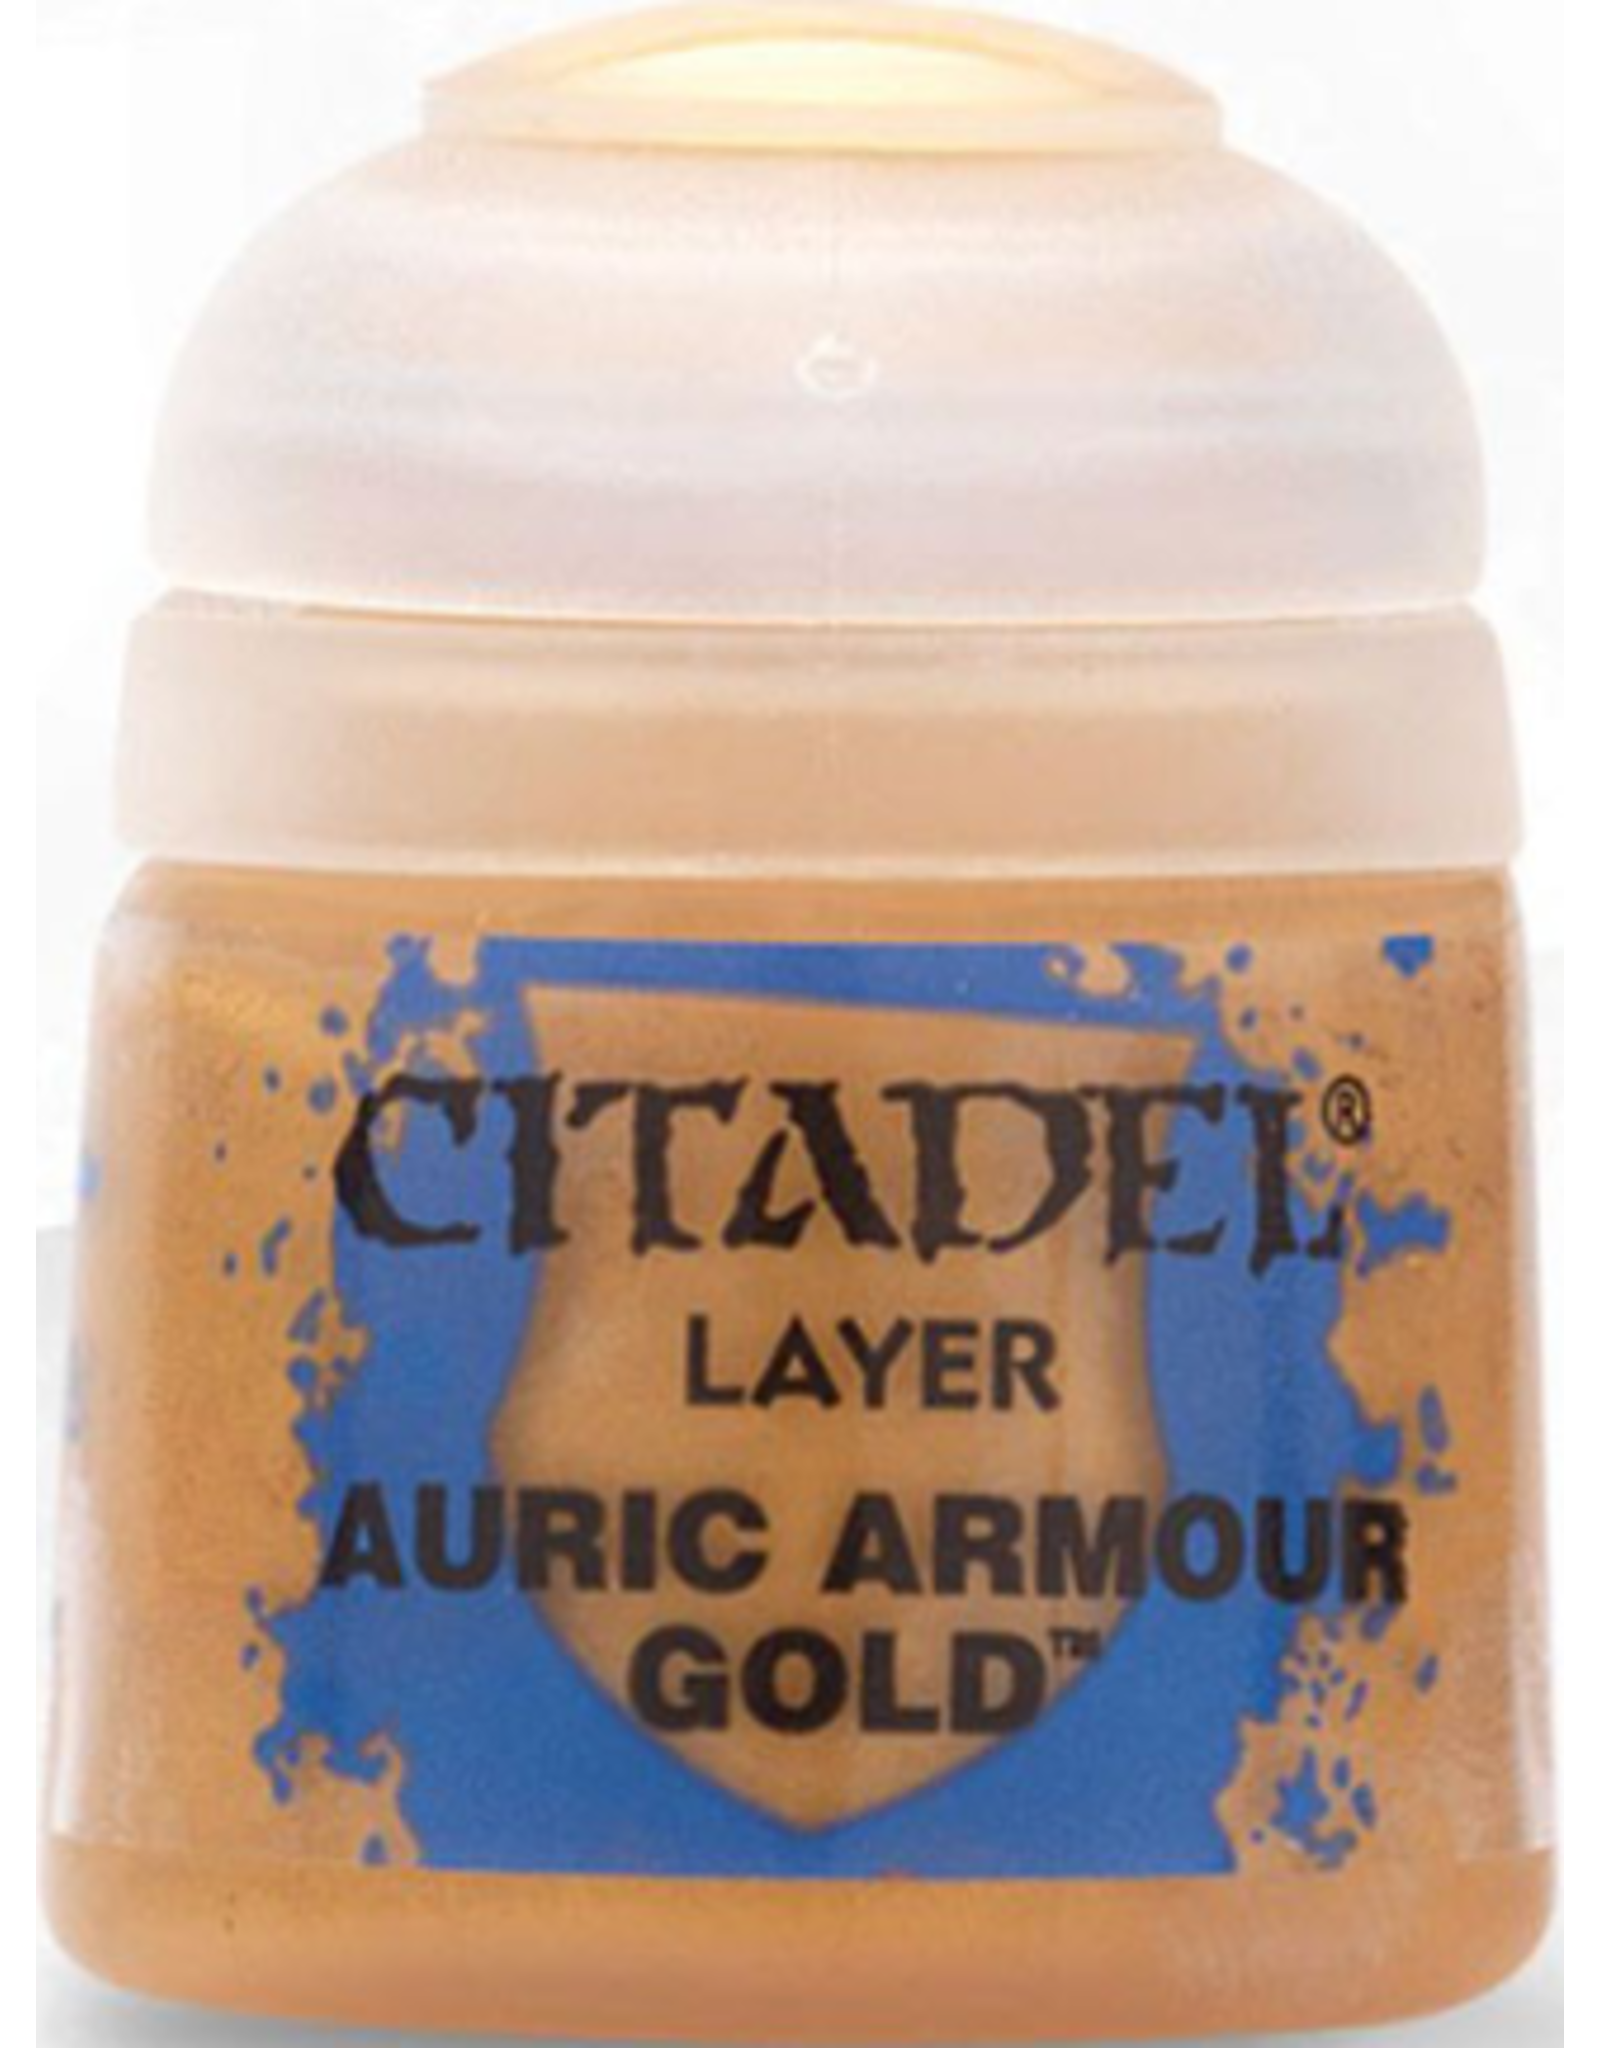 Games Workshop Citadel Layer Auric Armour Gold